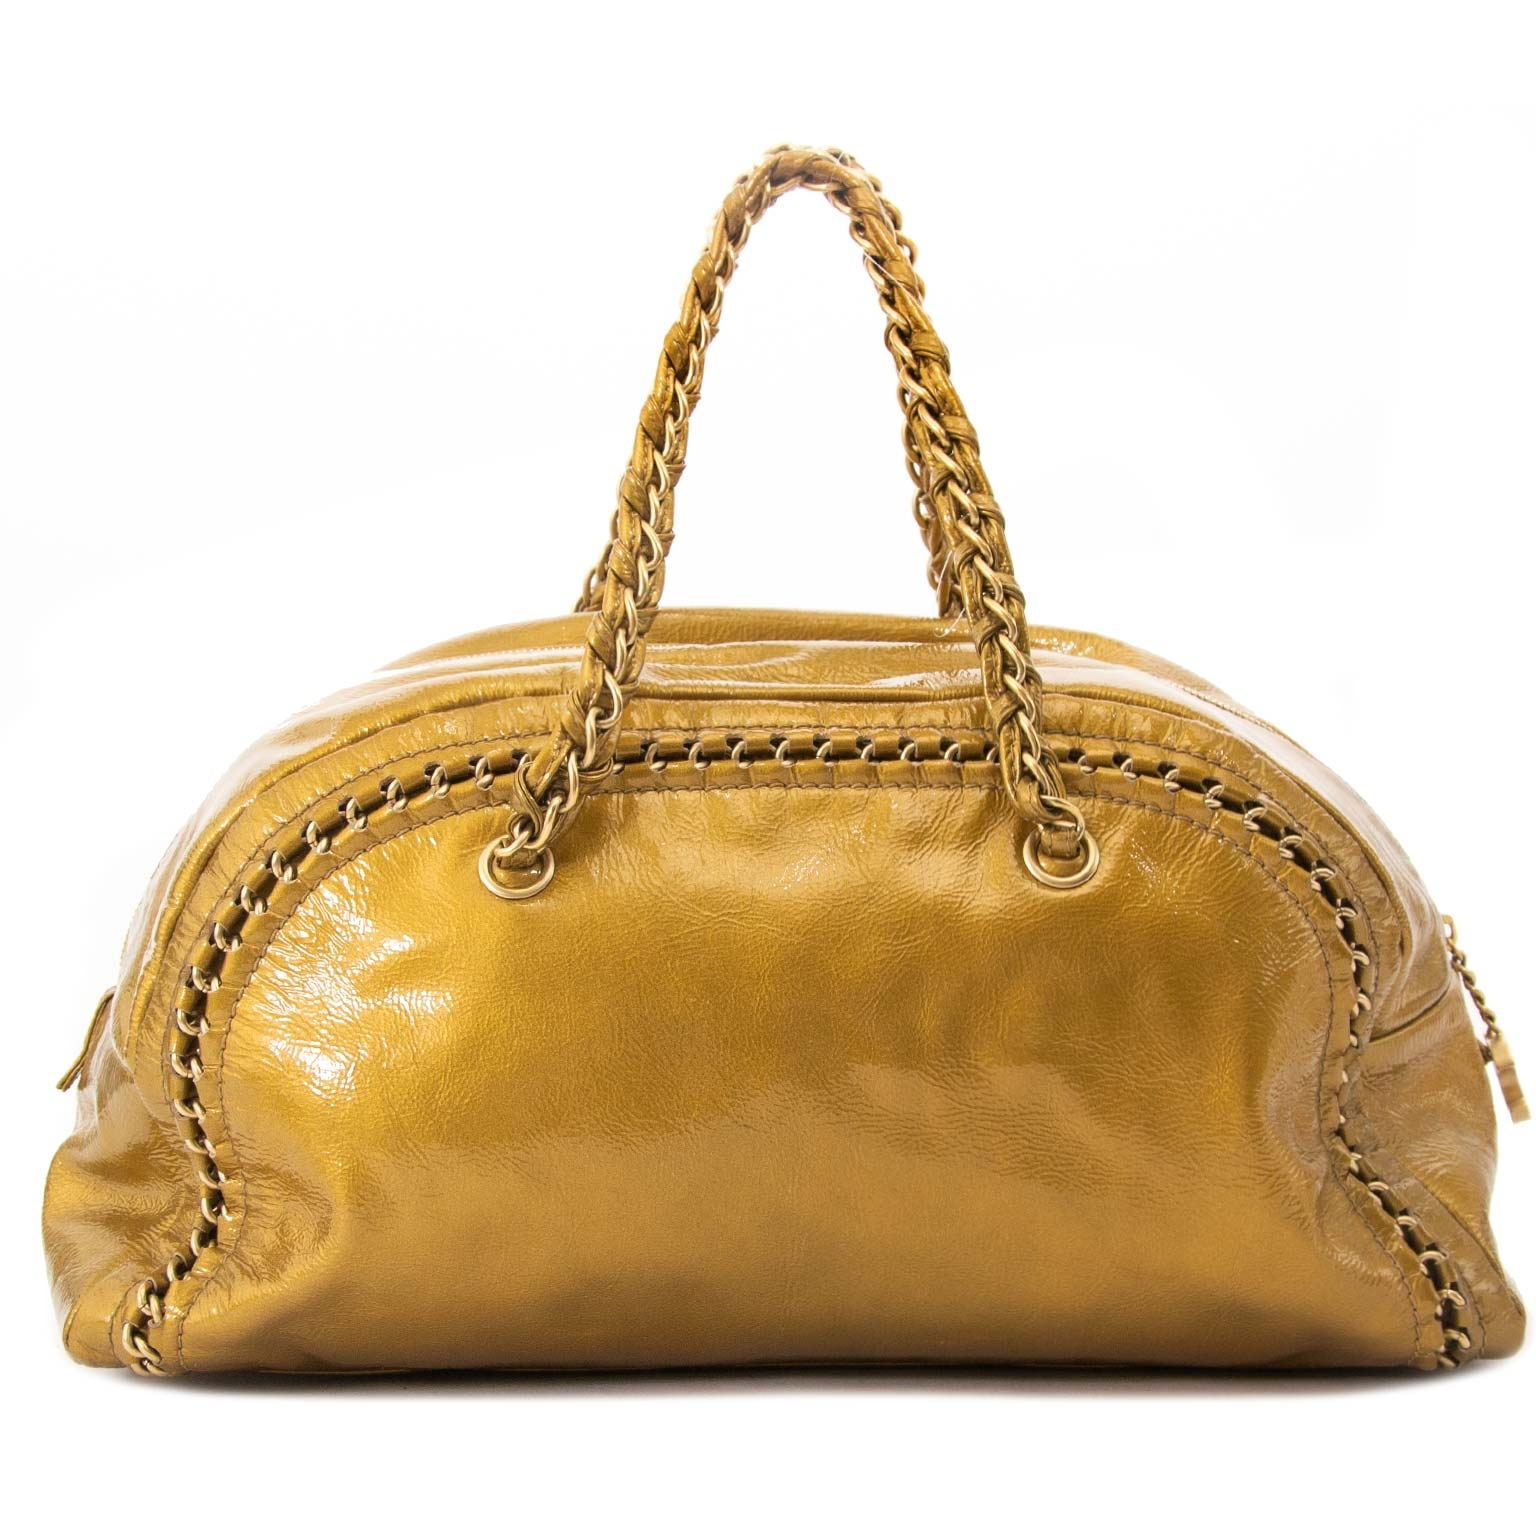 chanel gold patent leather bowling bag now for sale at labellov vintage fashion webshop belgium